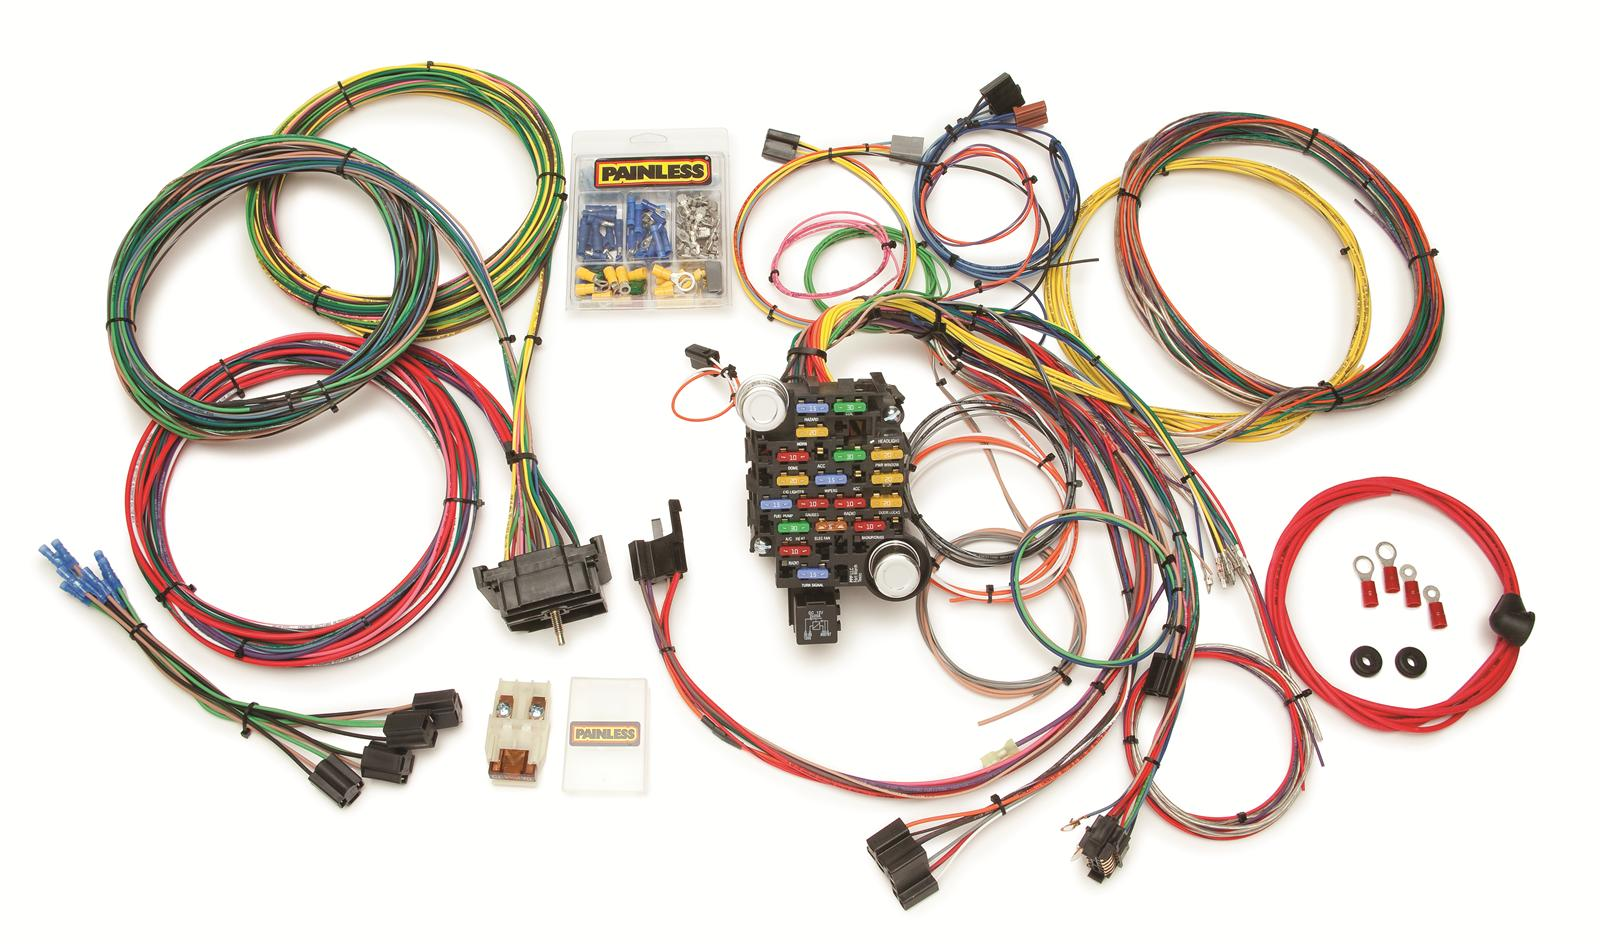 73 87 C10 Wiring Harness Library Jeep Cj Firewall Junction Product Description